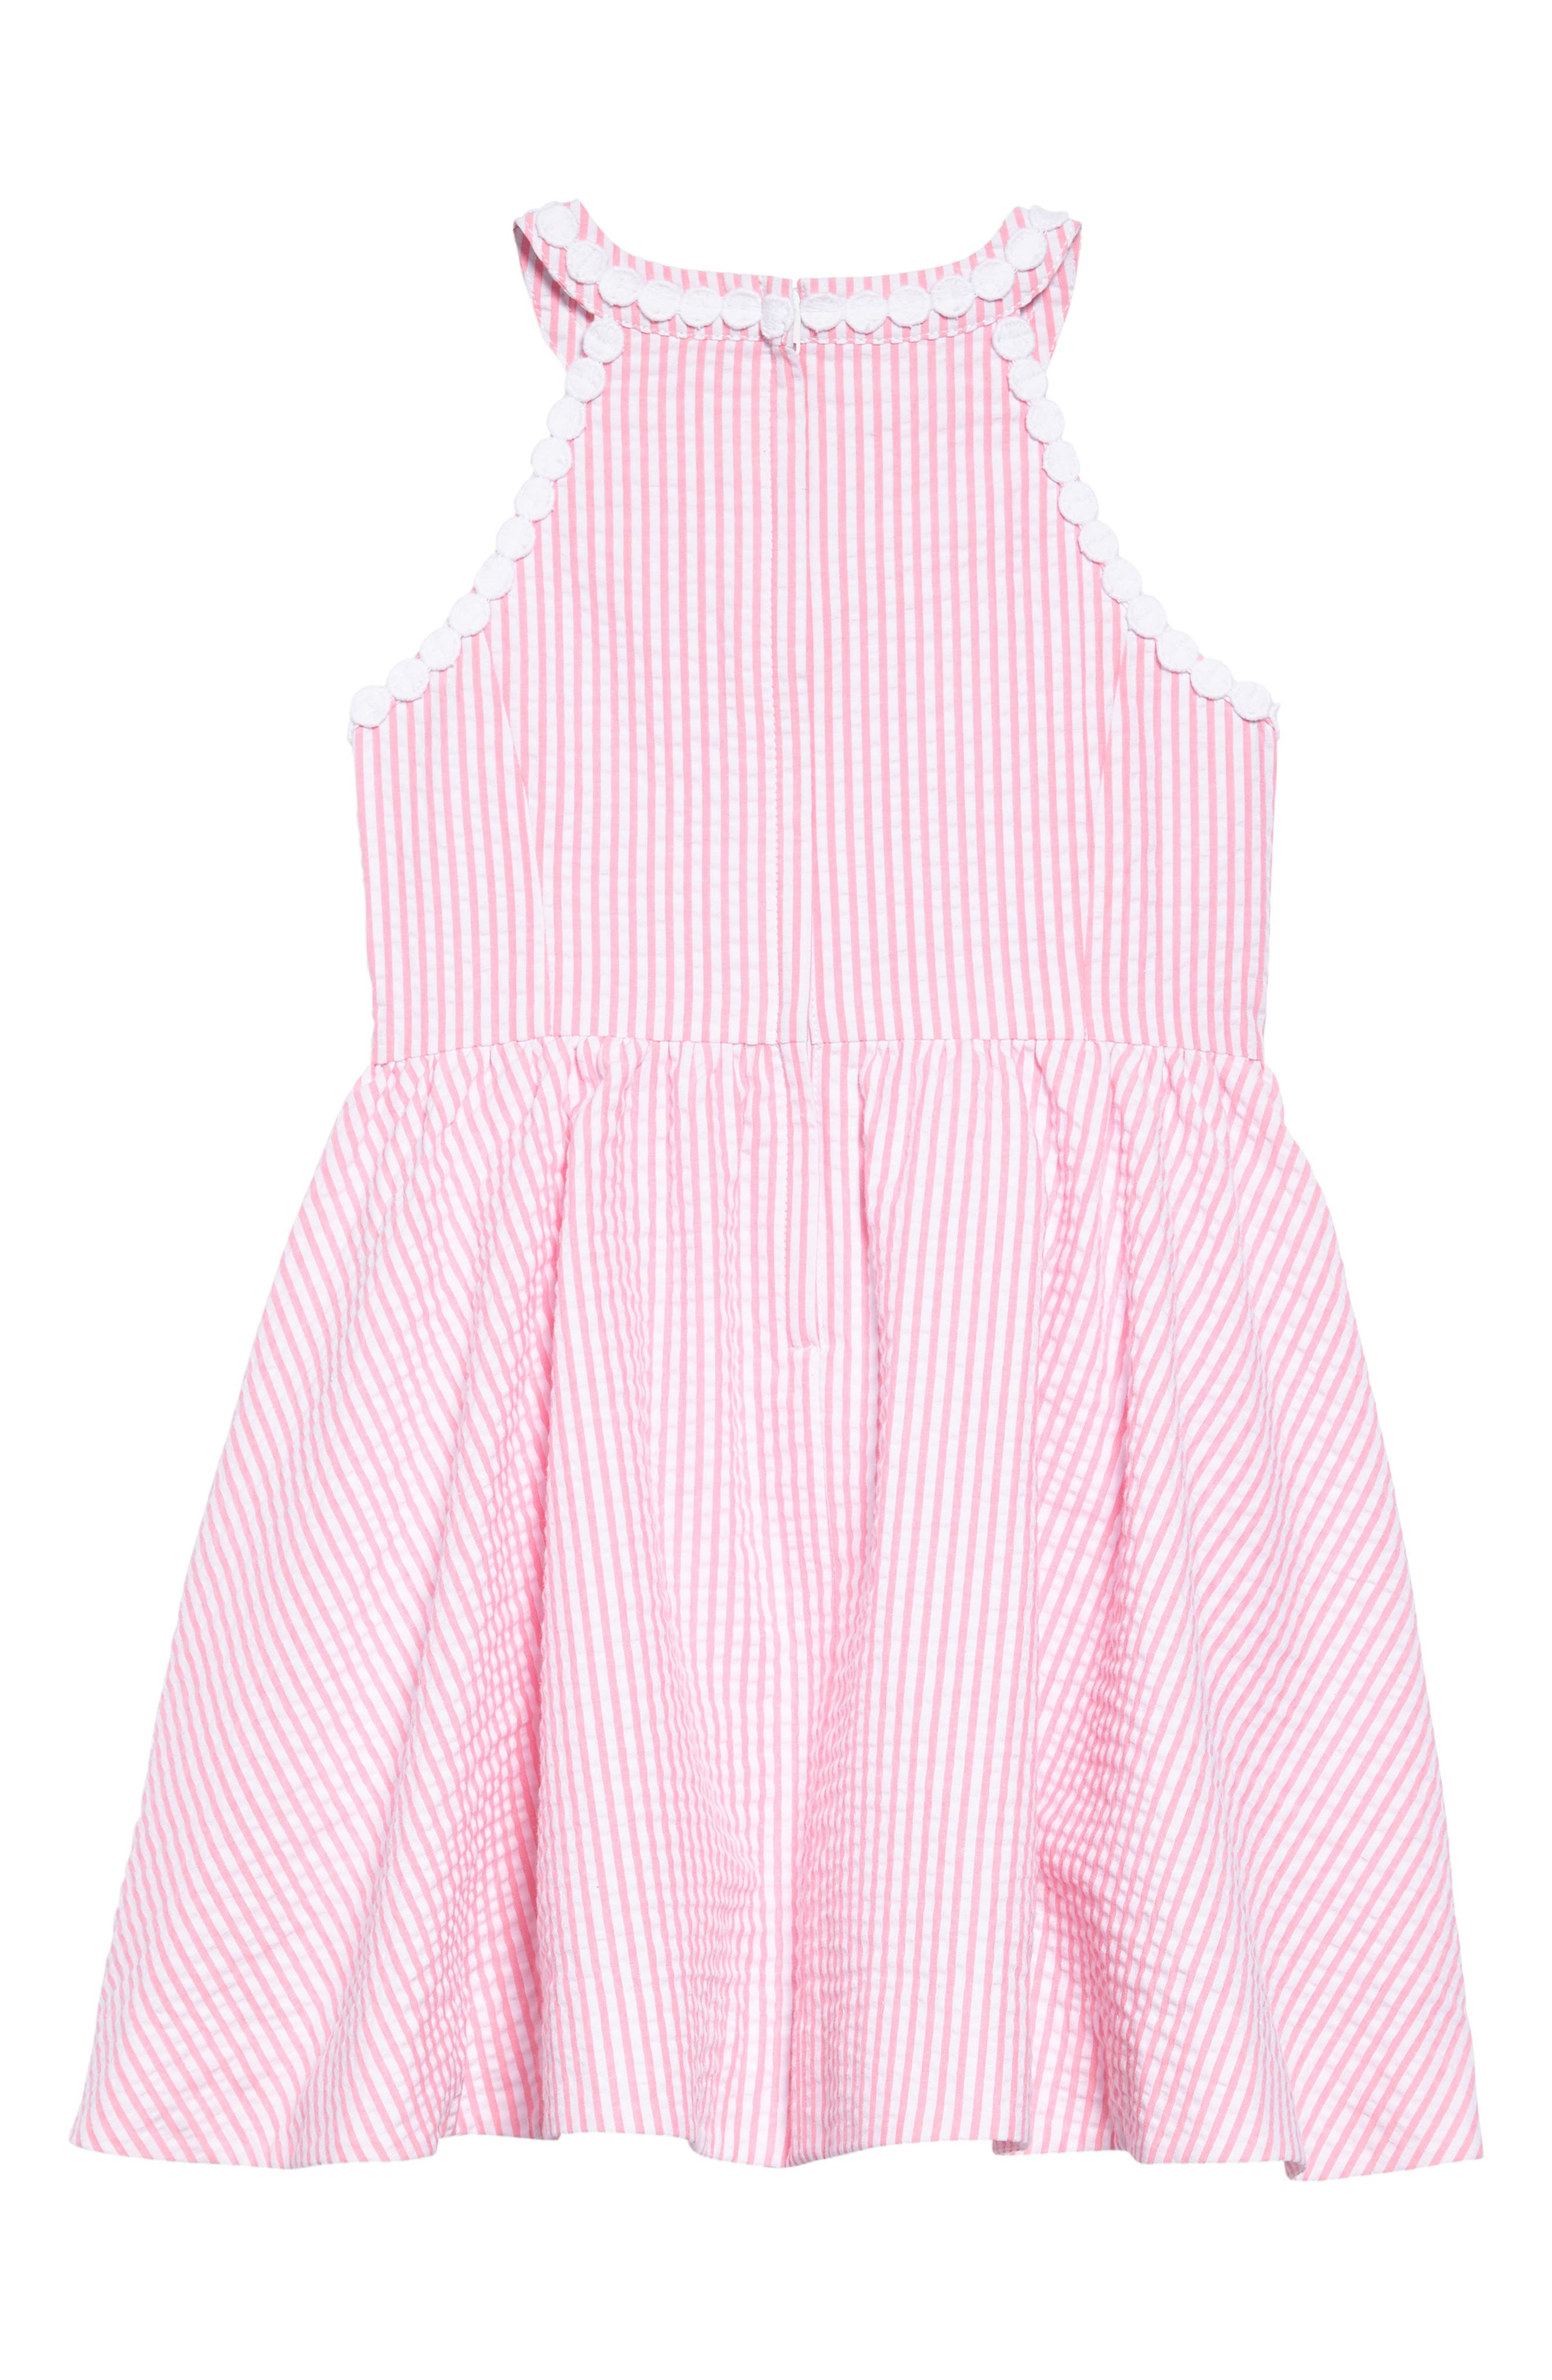 Kinley Fit & Flare Dress,                             Alternate thumbnail 2, color,                             PINK COSMO YARN DYED STRIPE